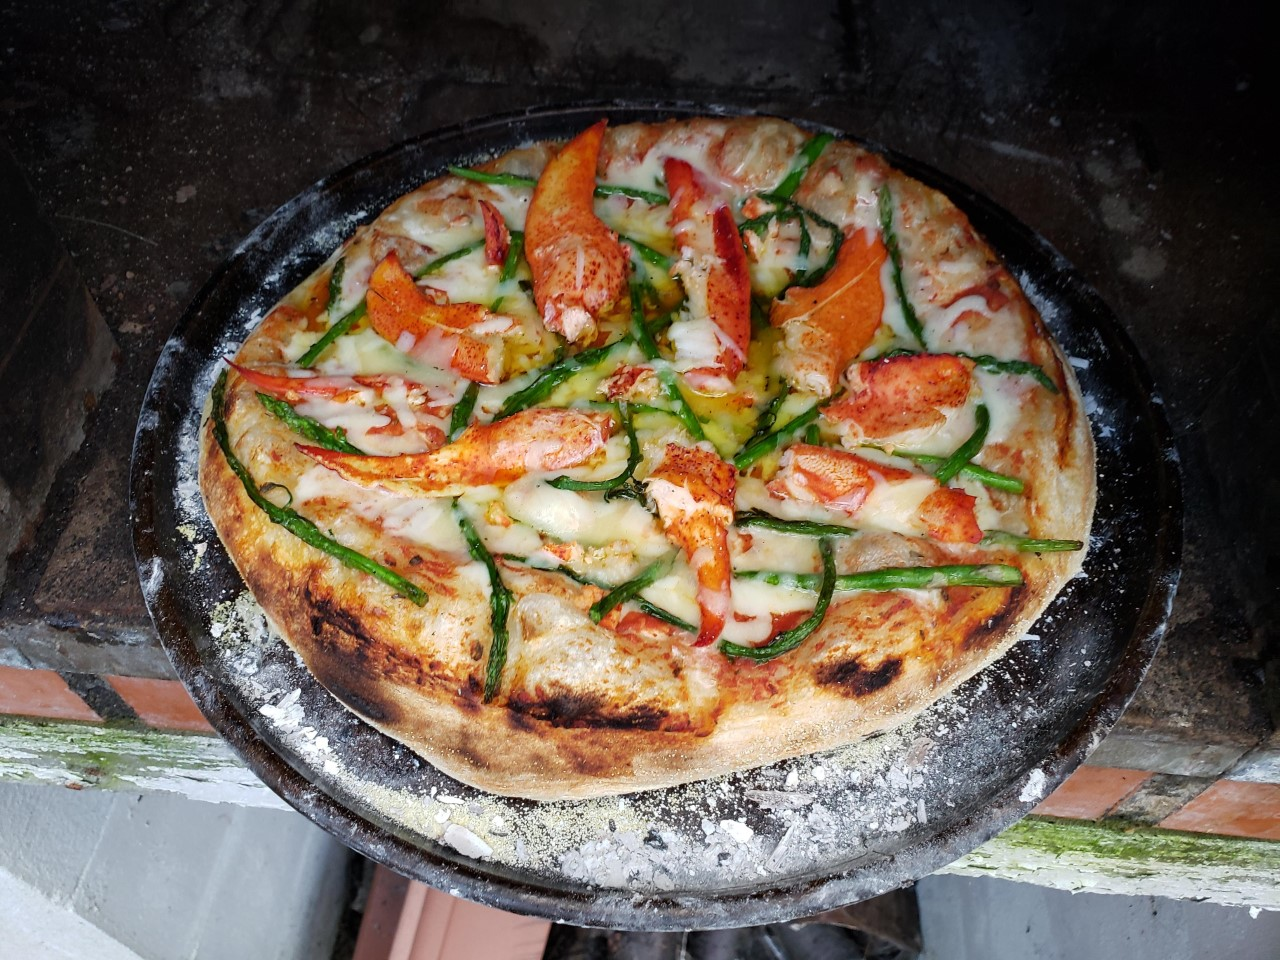 Lobster and Asparagus on Pizza